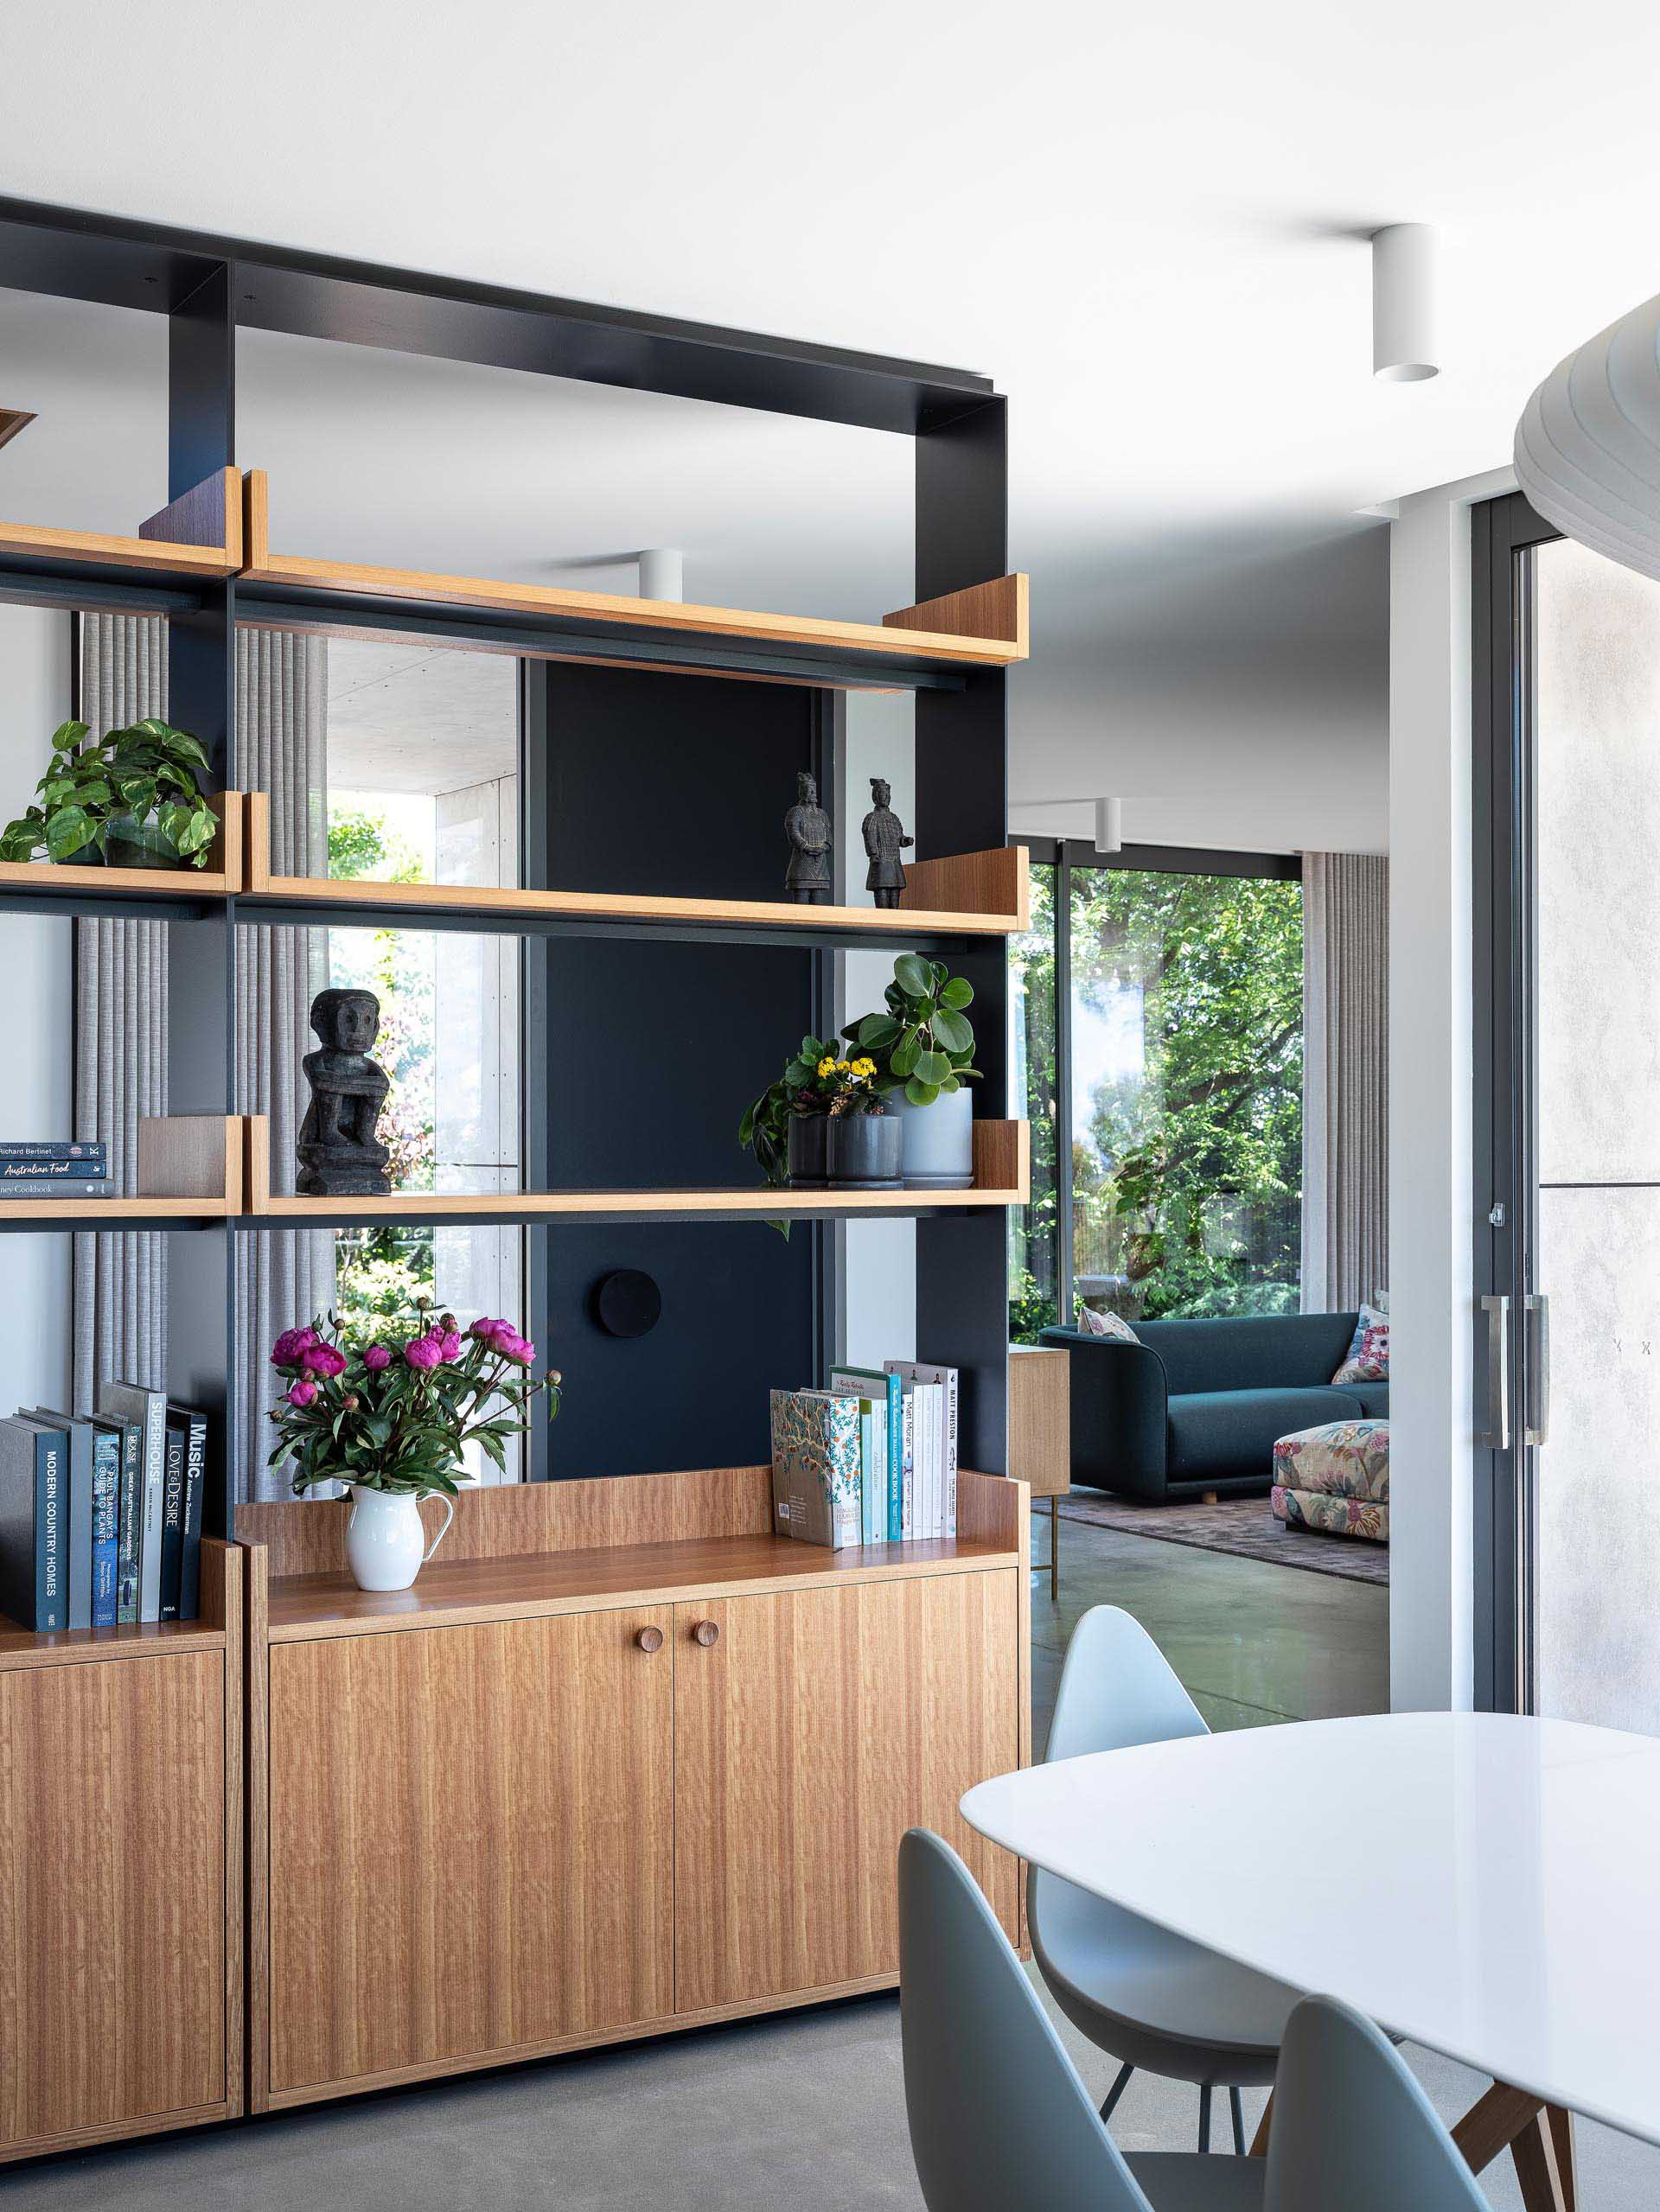 The blackbutt timber was also used to create lower cabinets, adding storage to the dining room. The shelving unit also allows the natural light from the windows to pass through, creating an open and bright interior.